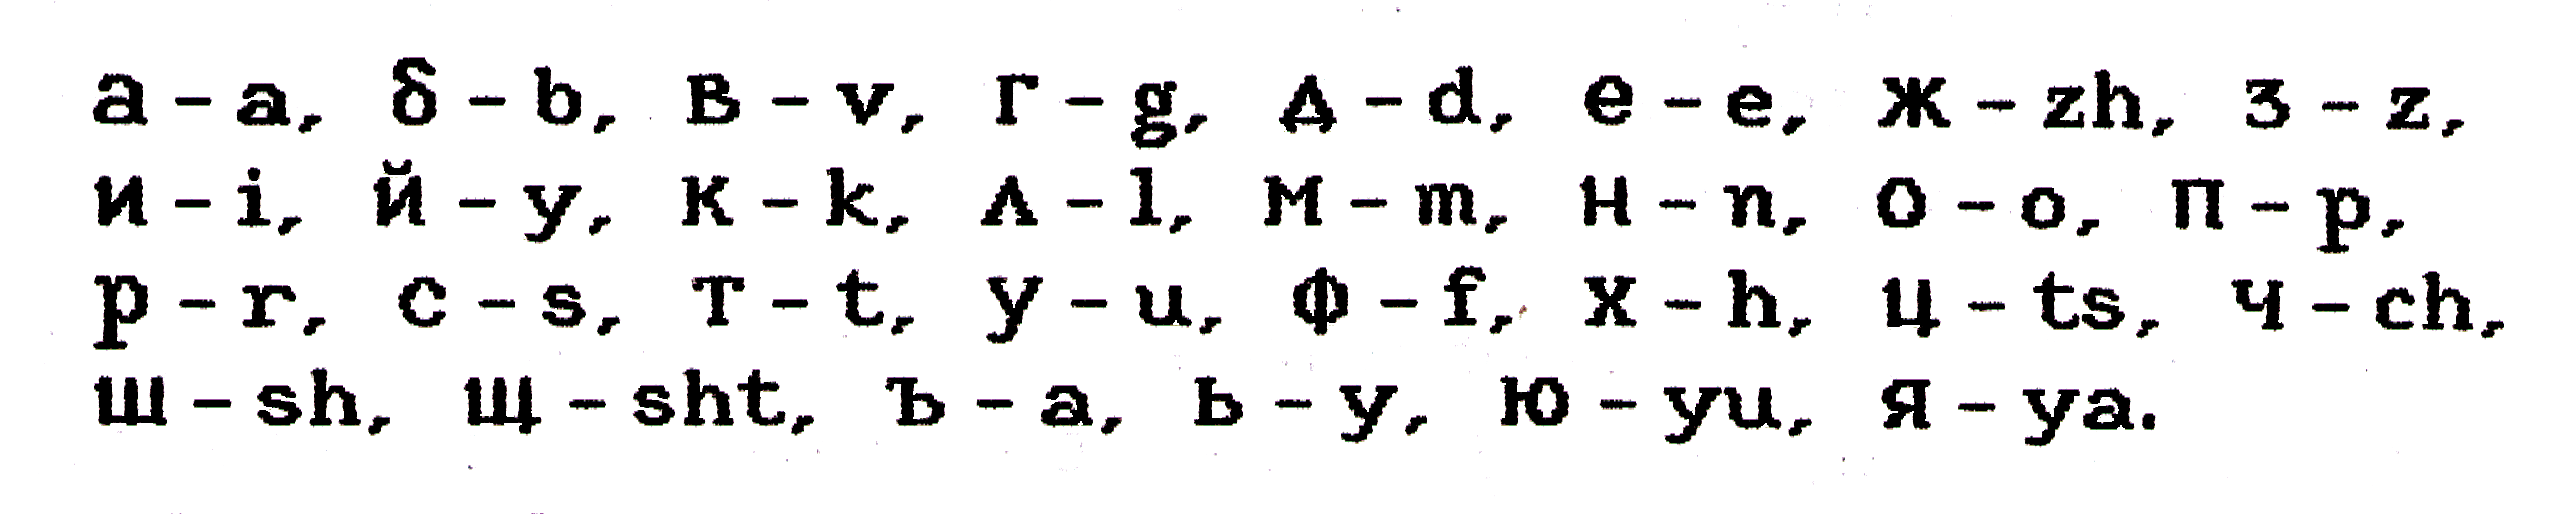 The Bulgarian Alphabet and Its Transliteration (gif)